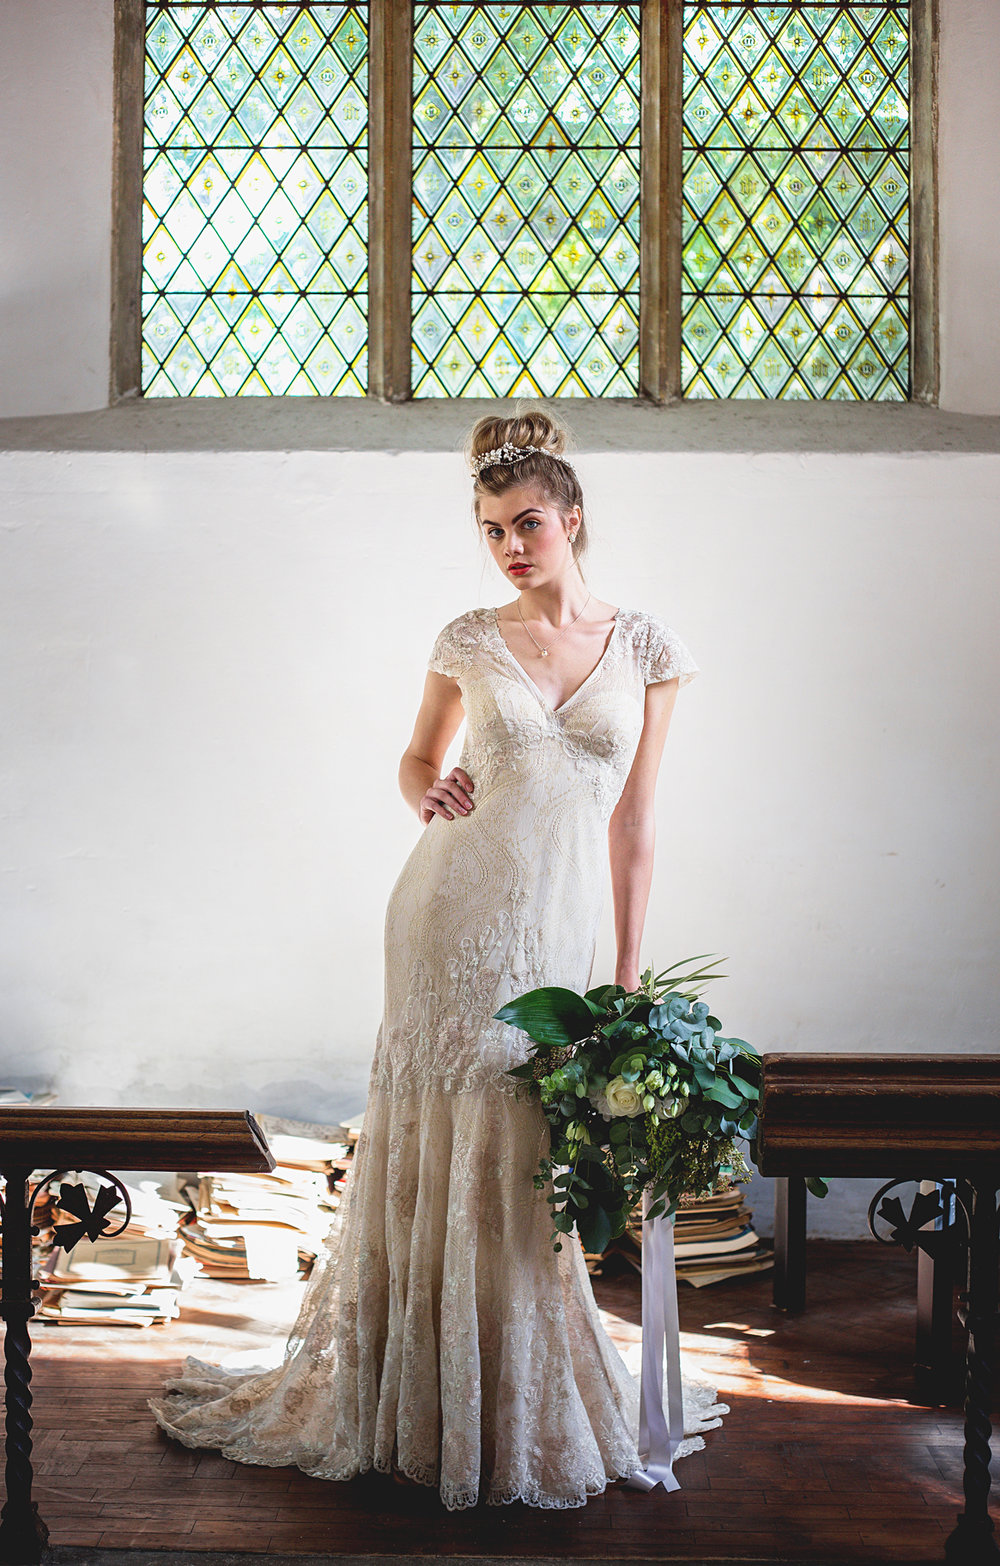 norfolk_wedding_photographer_portfolio_bridal_fashion_editorial_commercial_commission_esther_wild_norwich_magazine (11).jpg